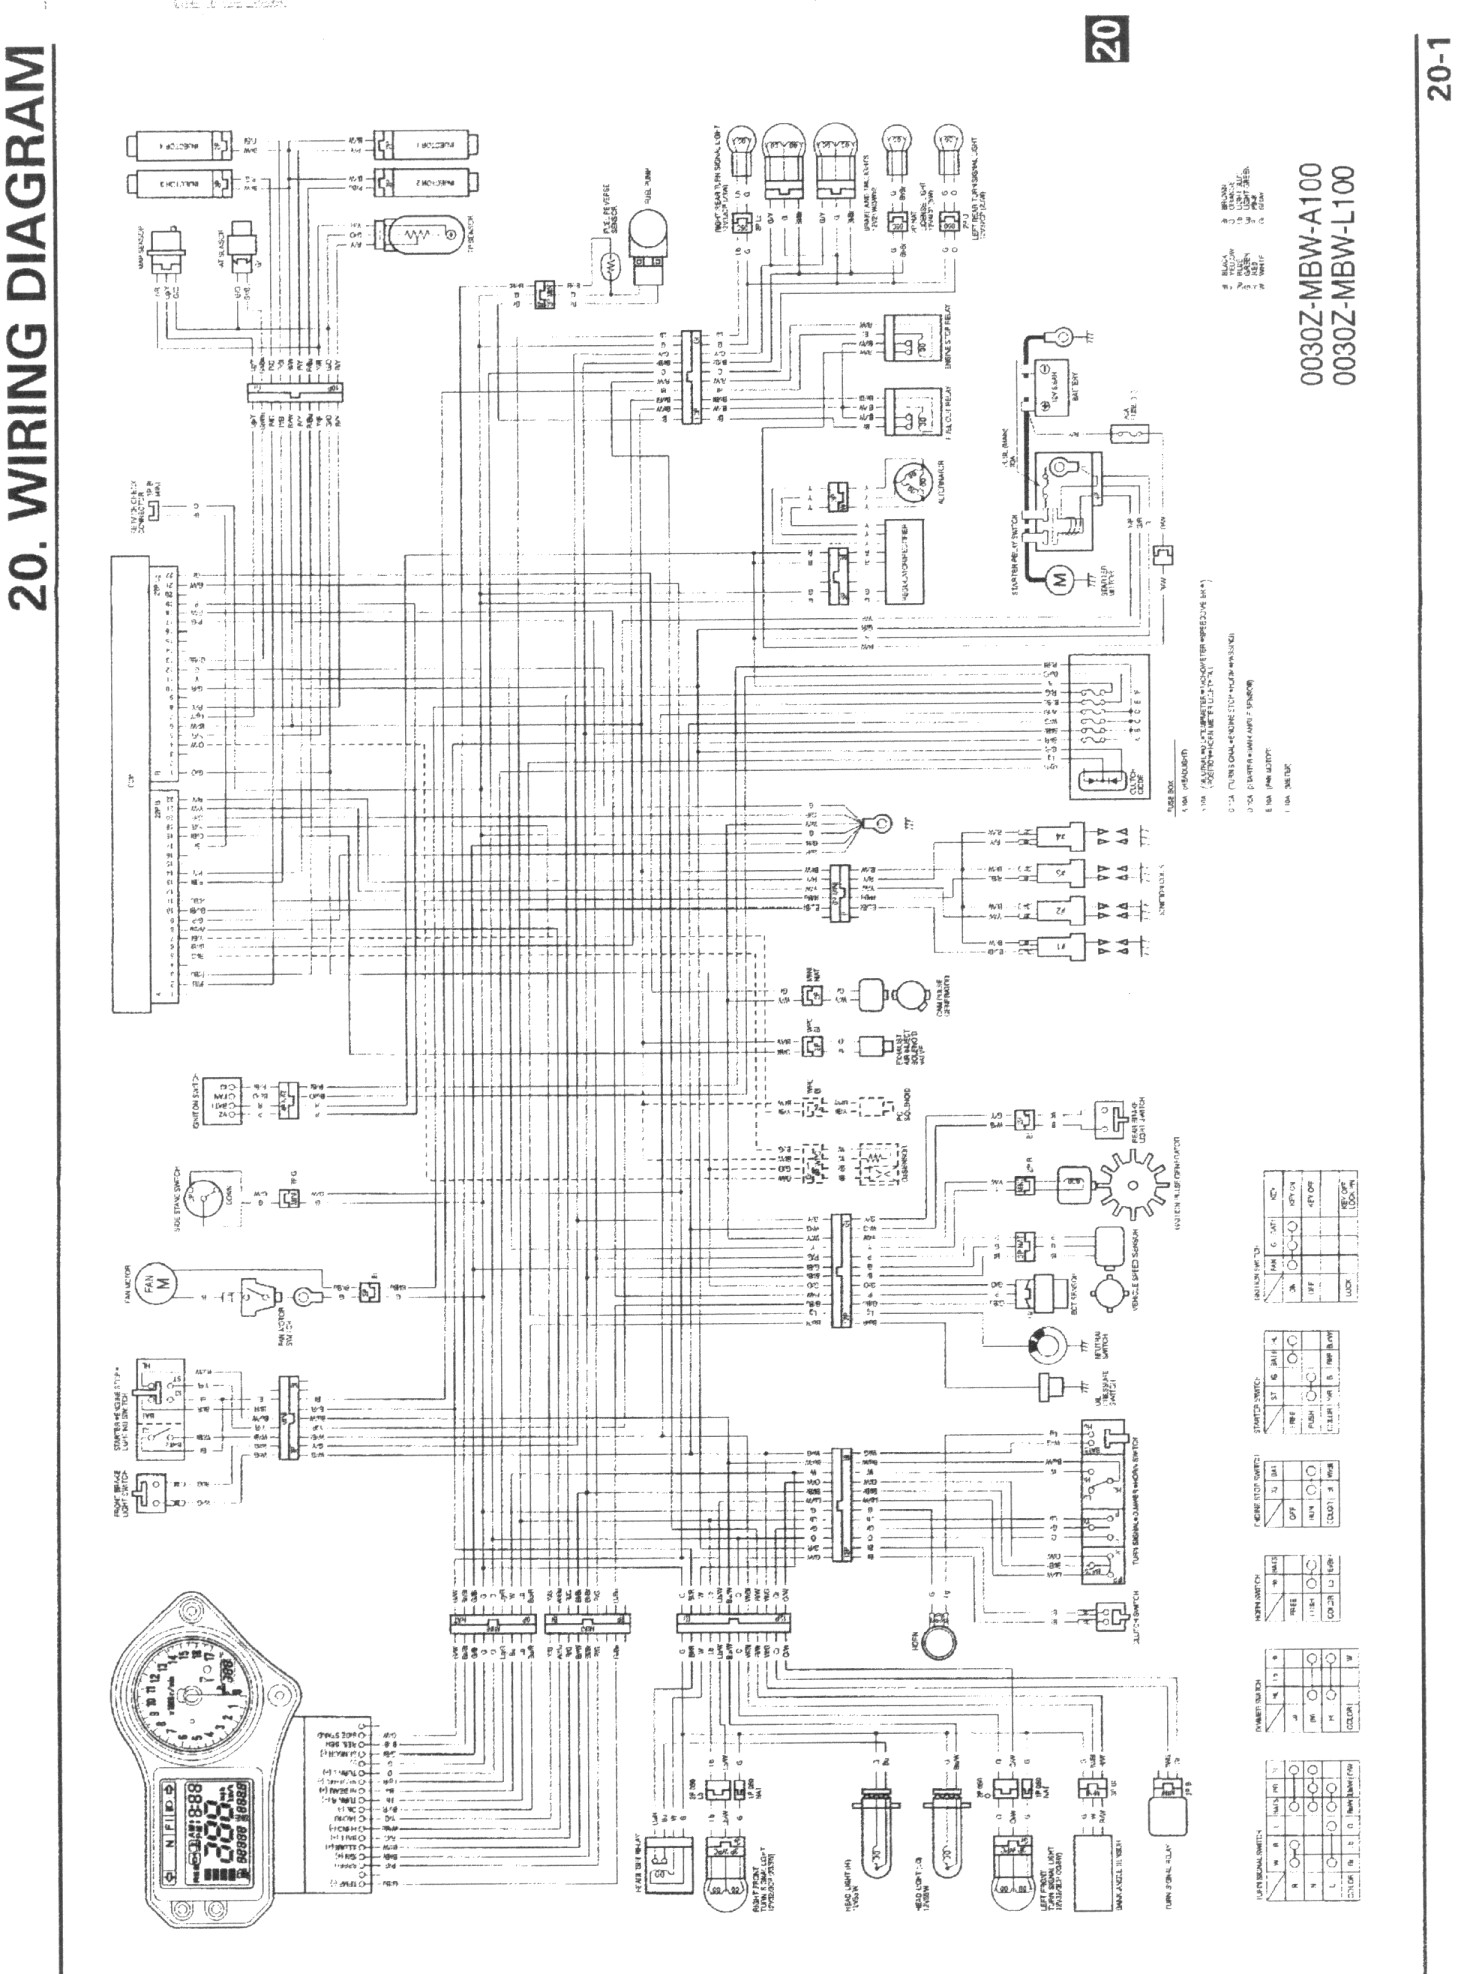 WRG-6786] Honda Cbr 600 F4i Wiring Diagram on